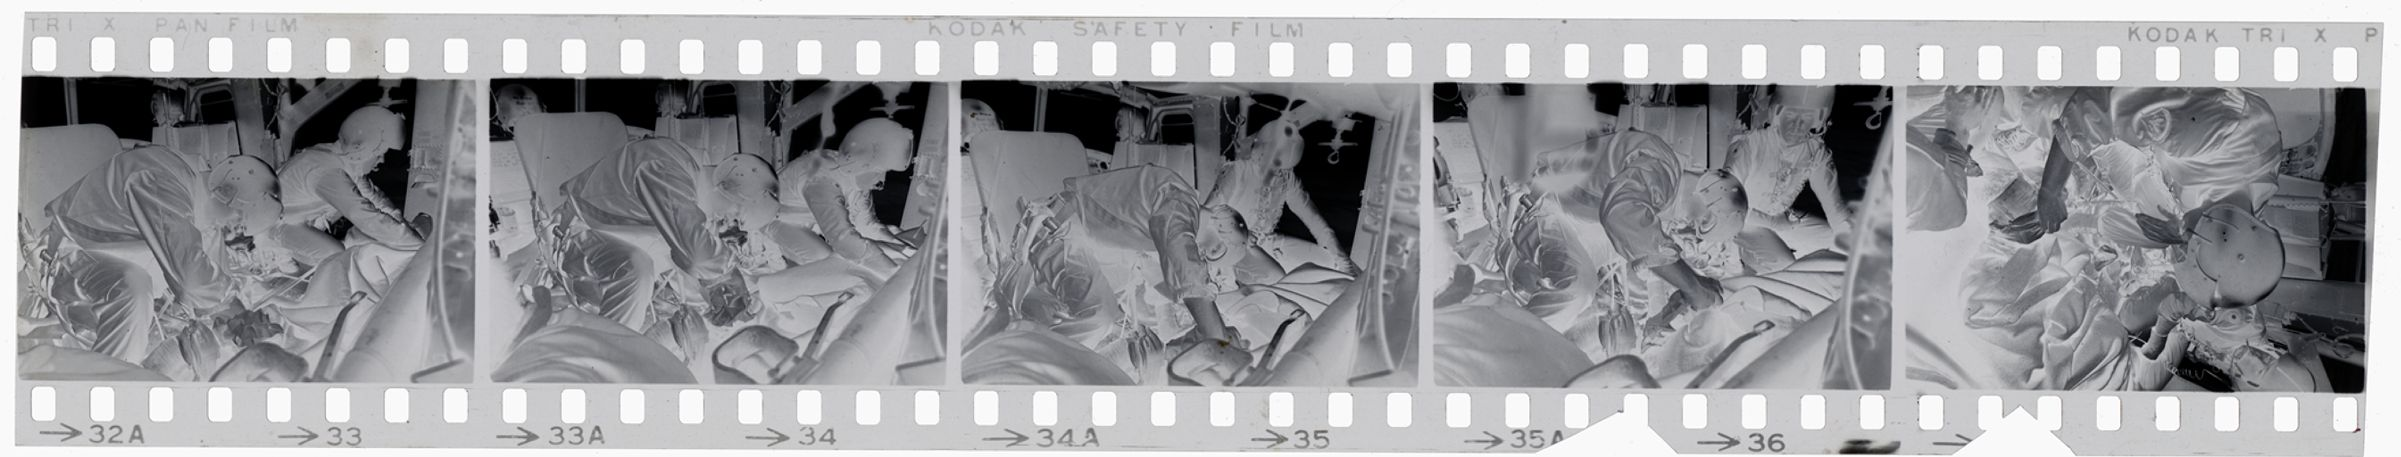 Untitled (Members Of 57Th Medical Detachment Treat Wounded Soldiers Inside Medevac Helicopter, Vietnam)